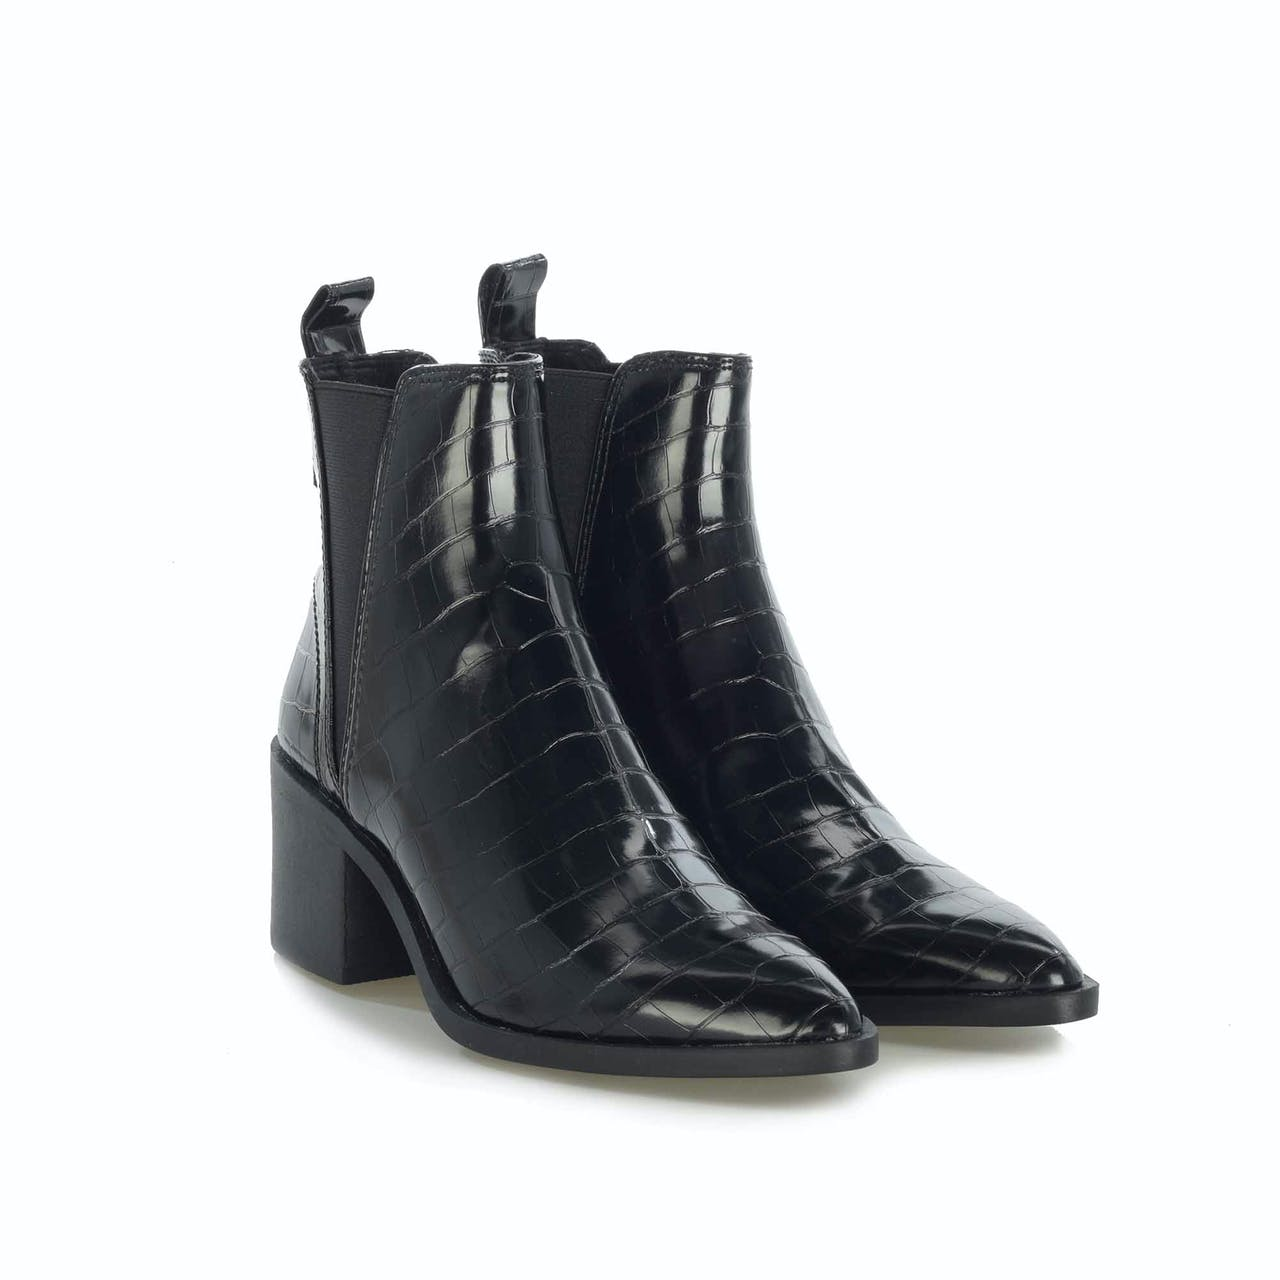 Stiefelette - Audience Black Croco